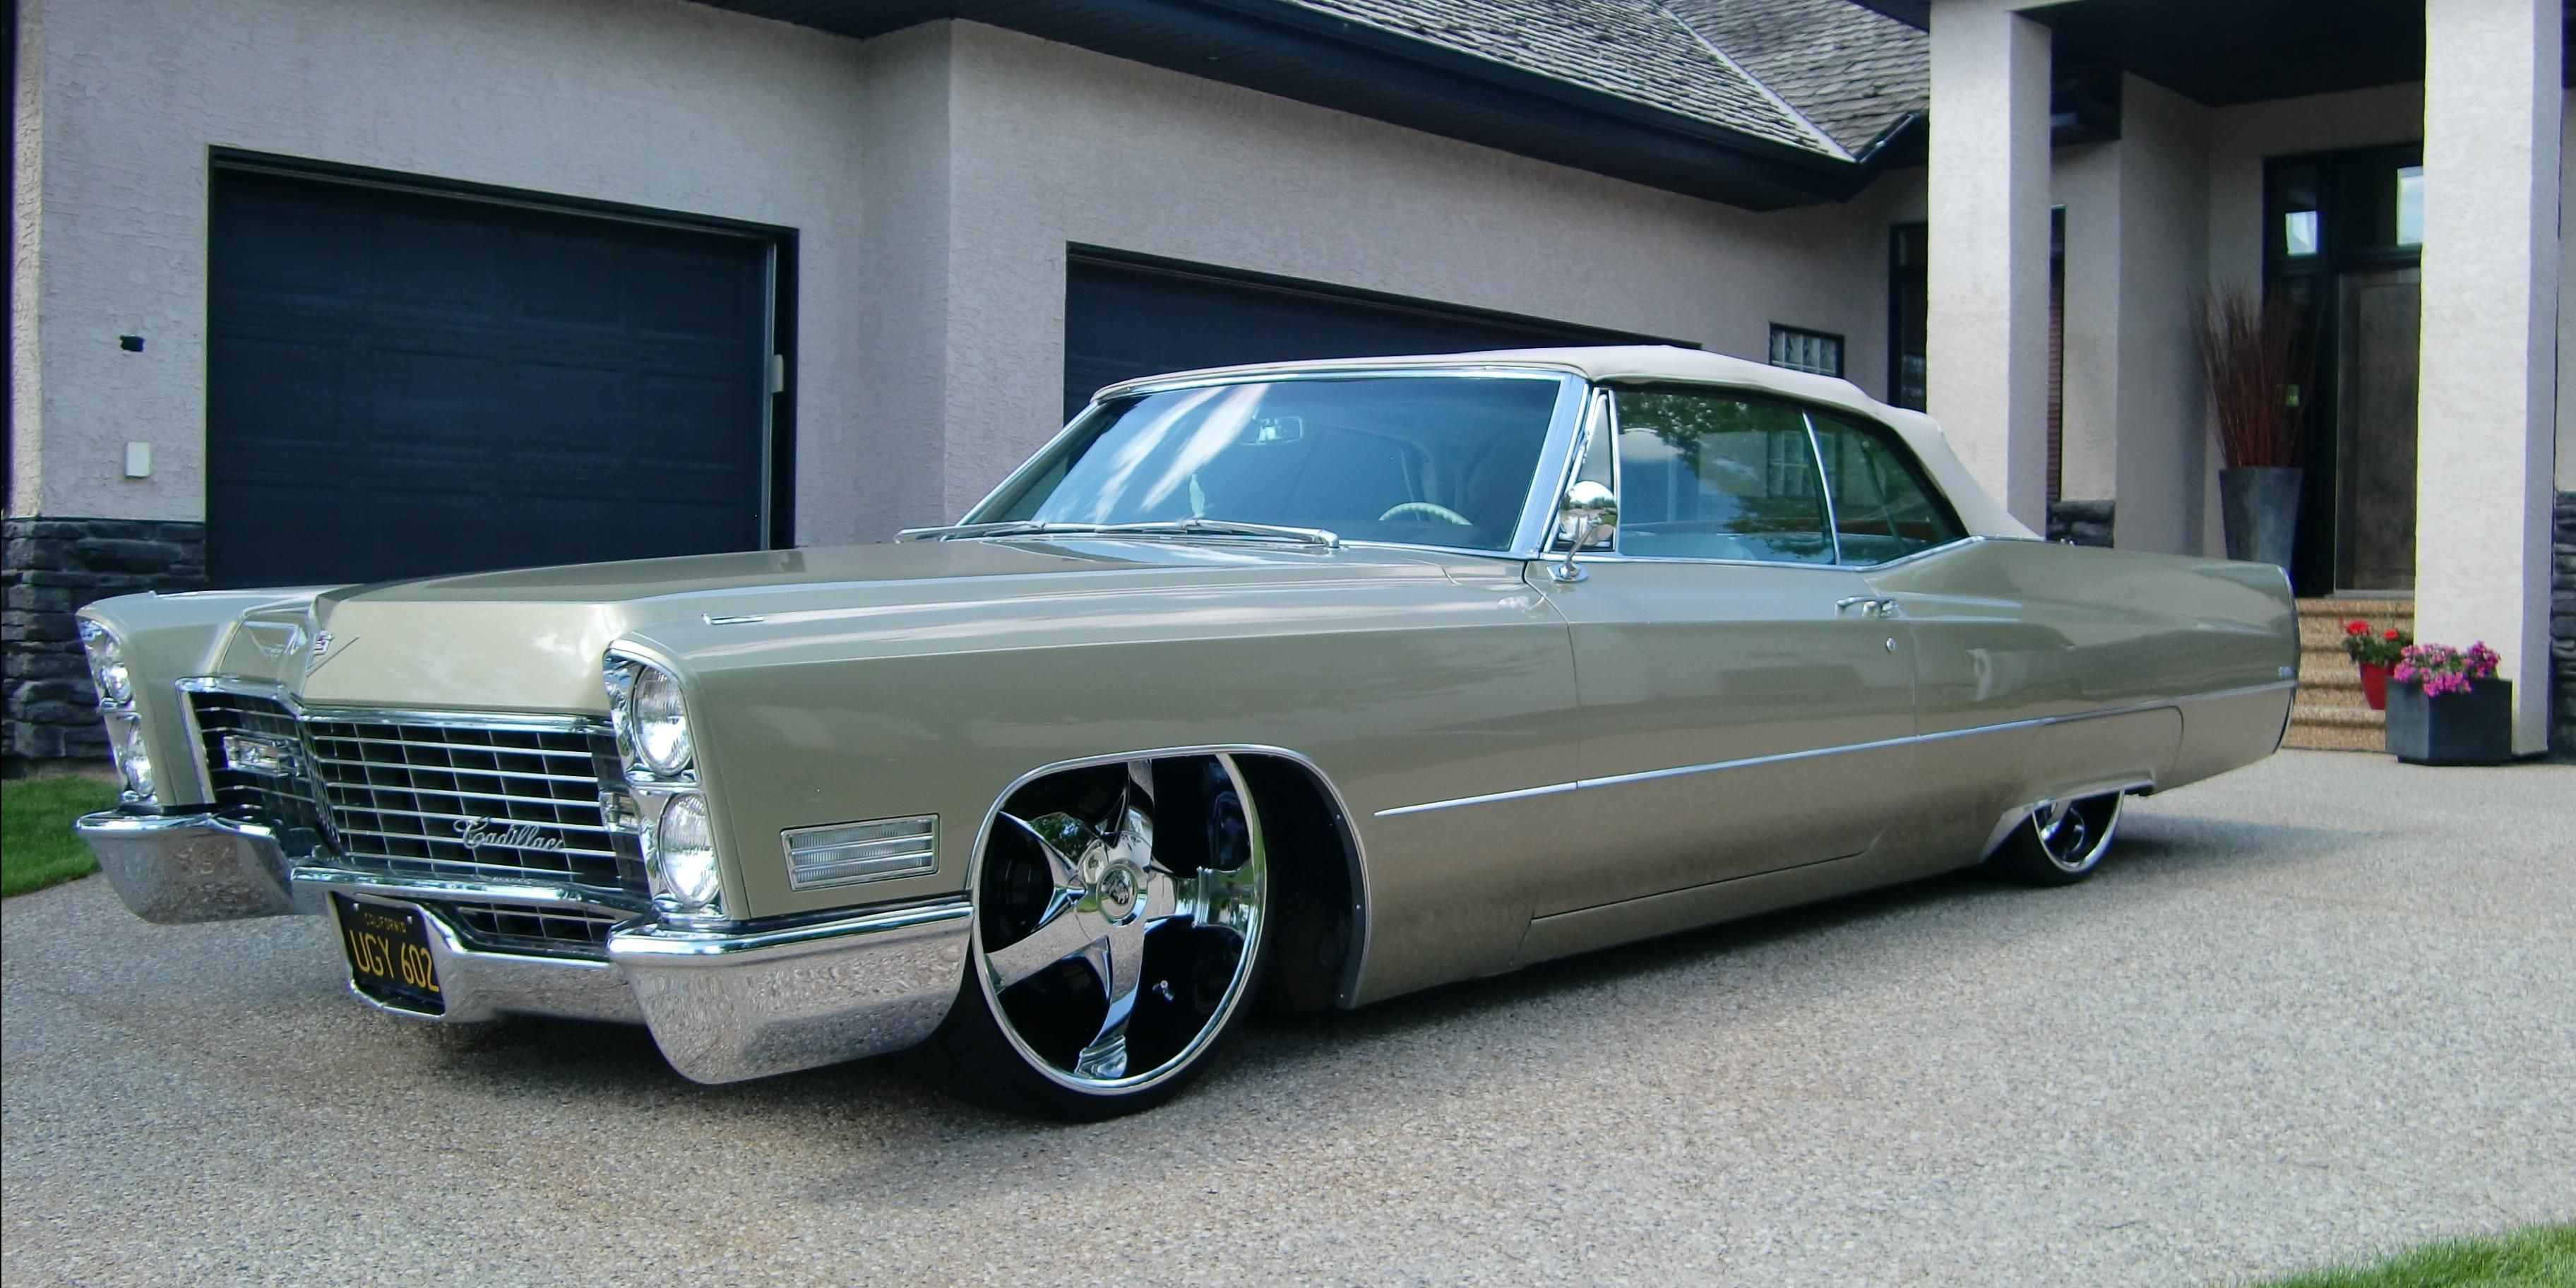 gman1965's 1967 Cadillac DeVille | Old cars | Pinterest | Cadillac